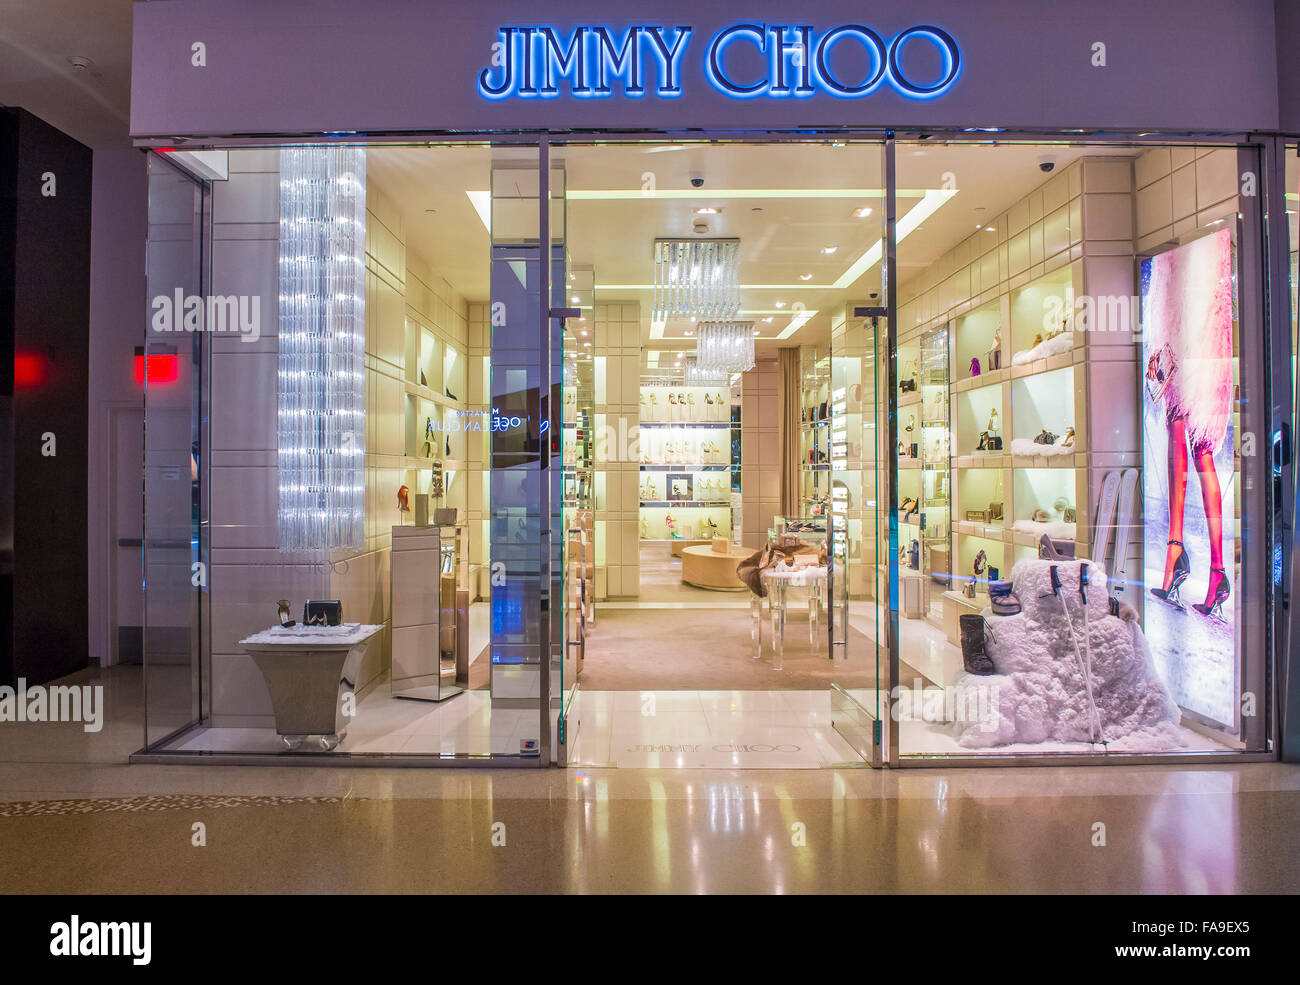 7644ef08f855 Exterior of a Jimmy Choo store in Las Vegas strip - Stock Image